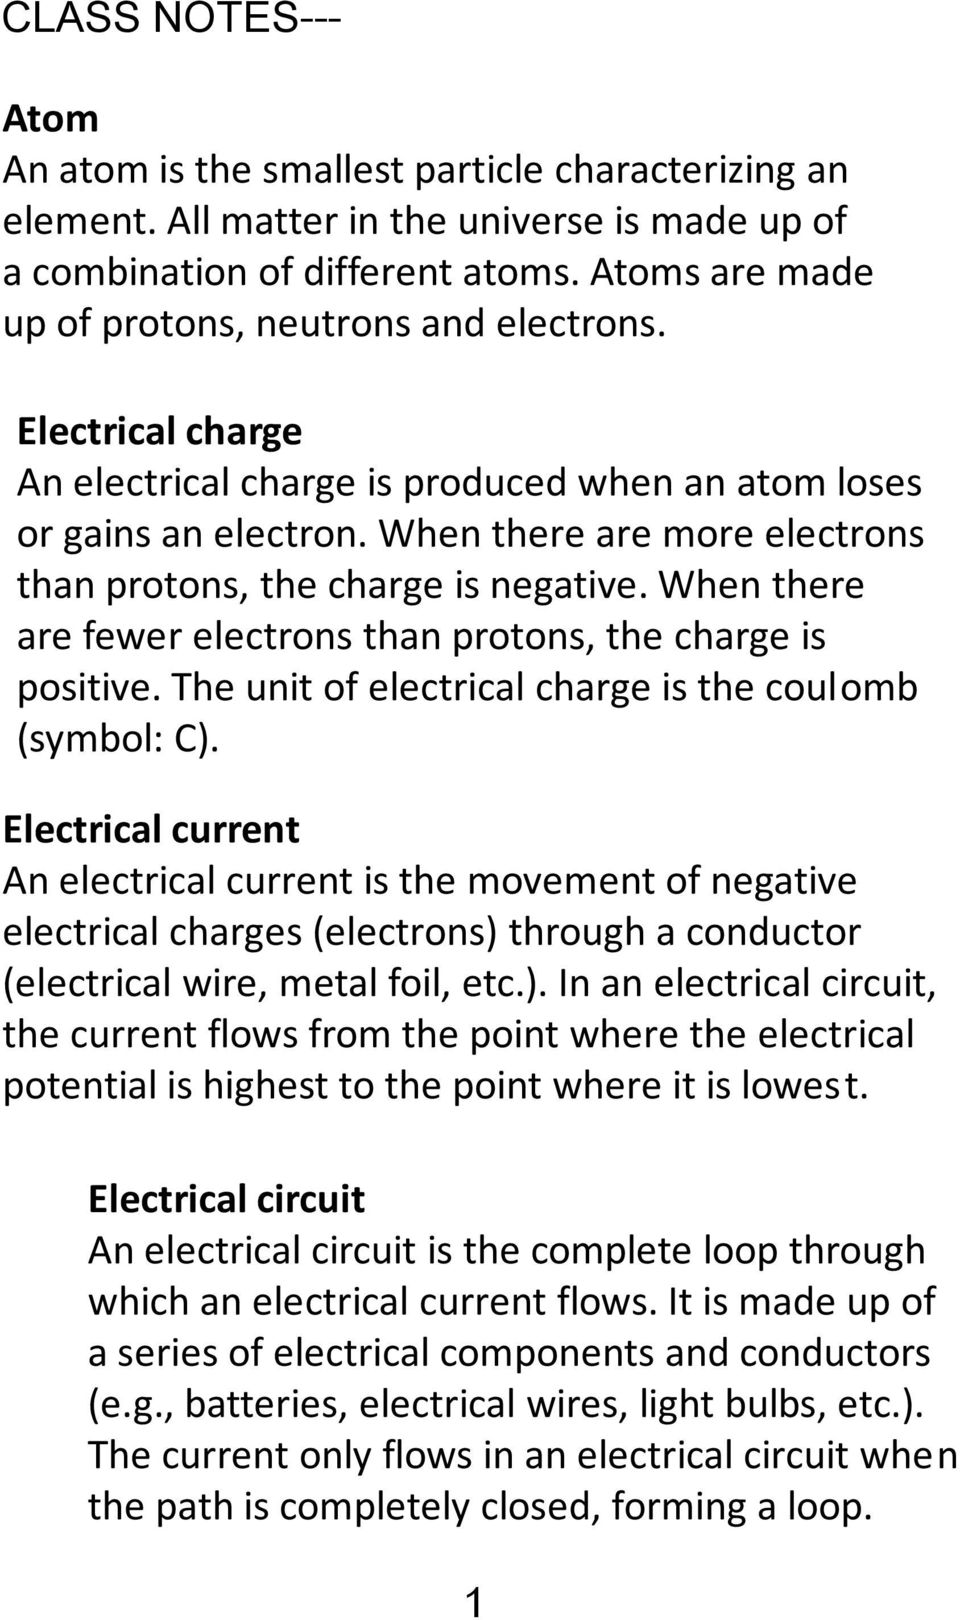 Charge And Electricity Worksheet Answers The Best Most Science Review Cheat Sheet By Wkcheezy Download Free When There Are More Electrons Than Protons Is Negative